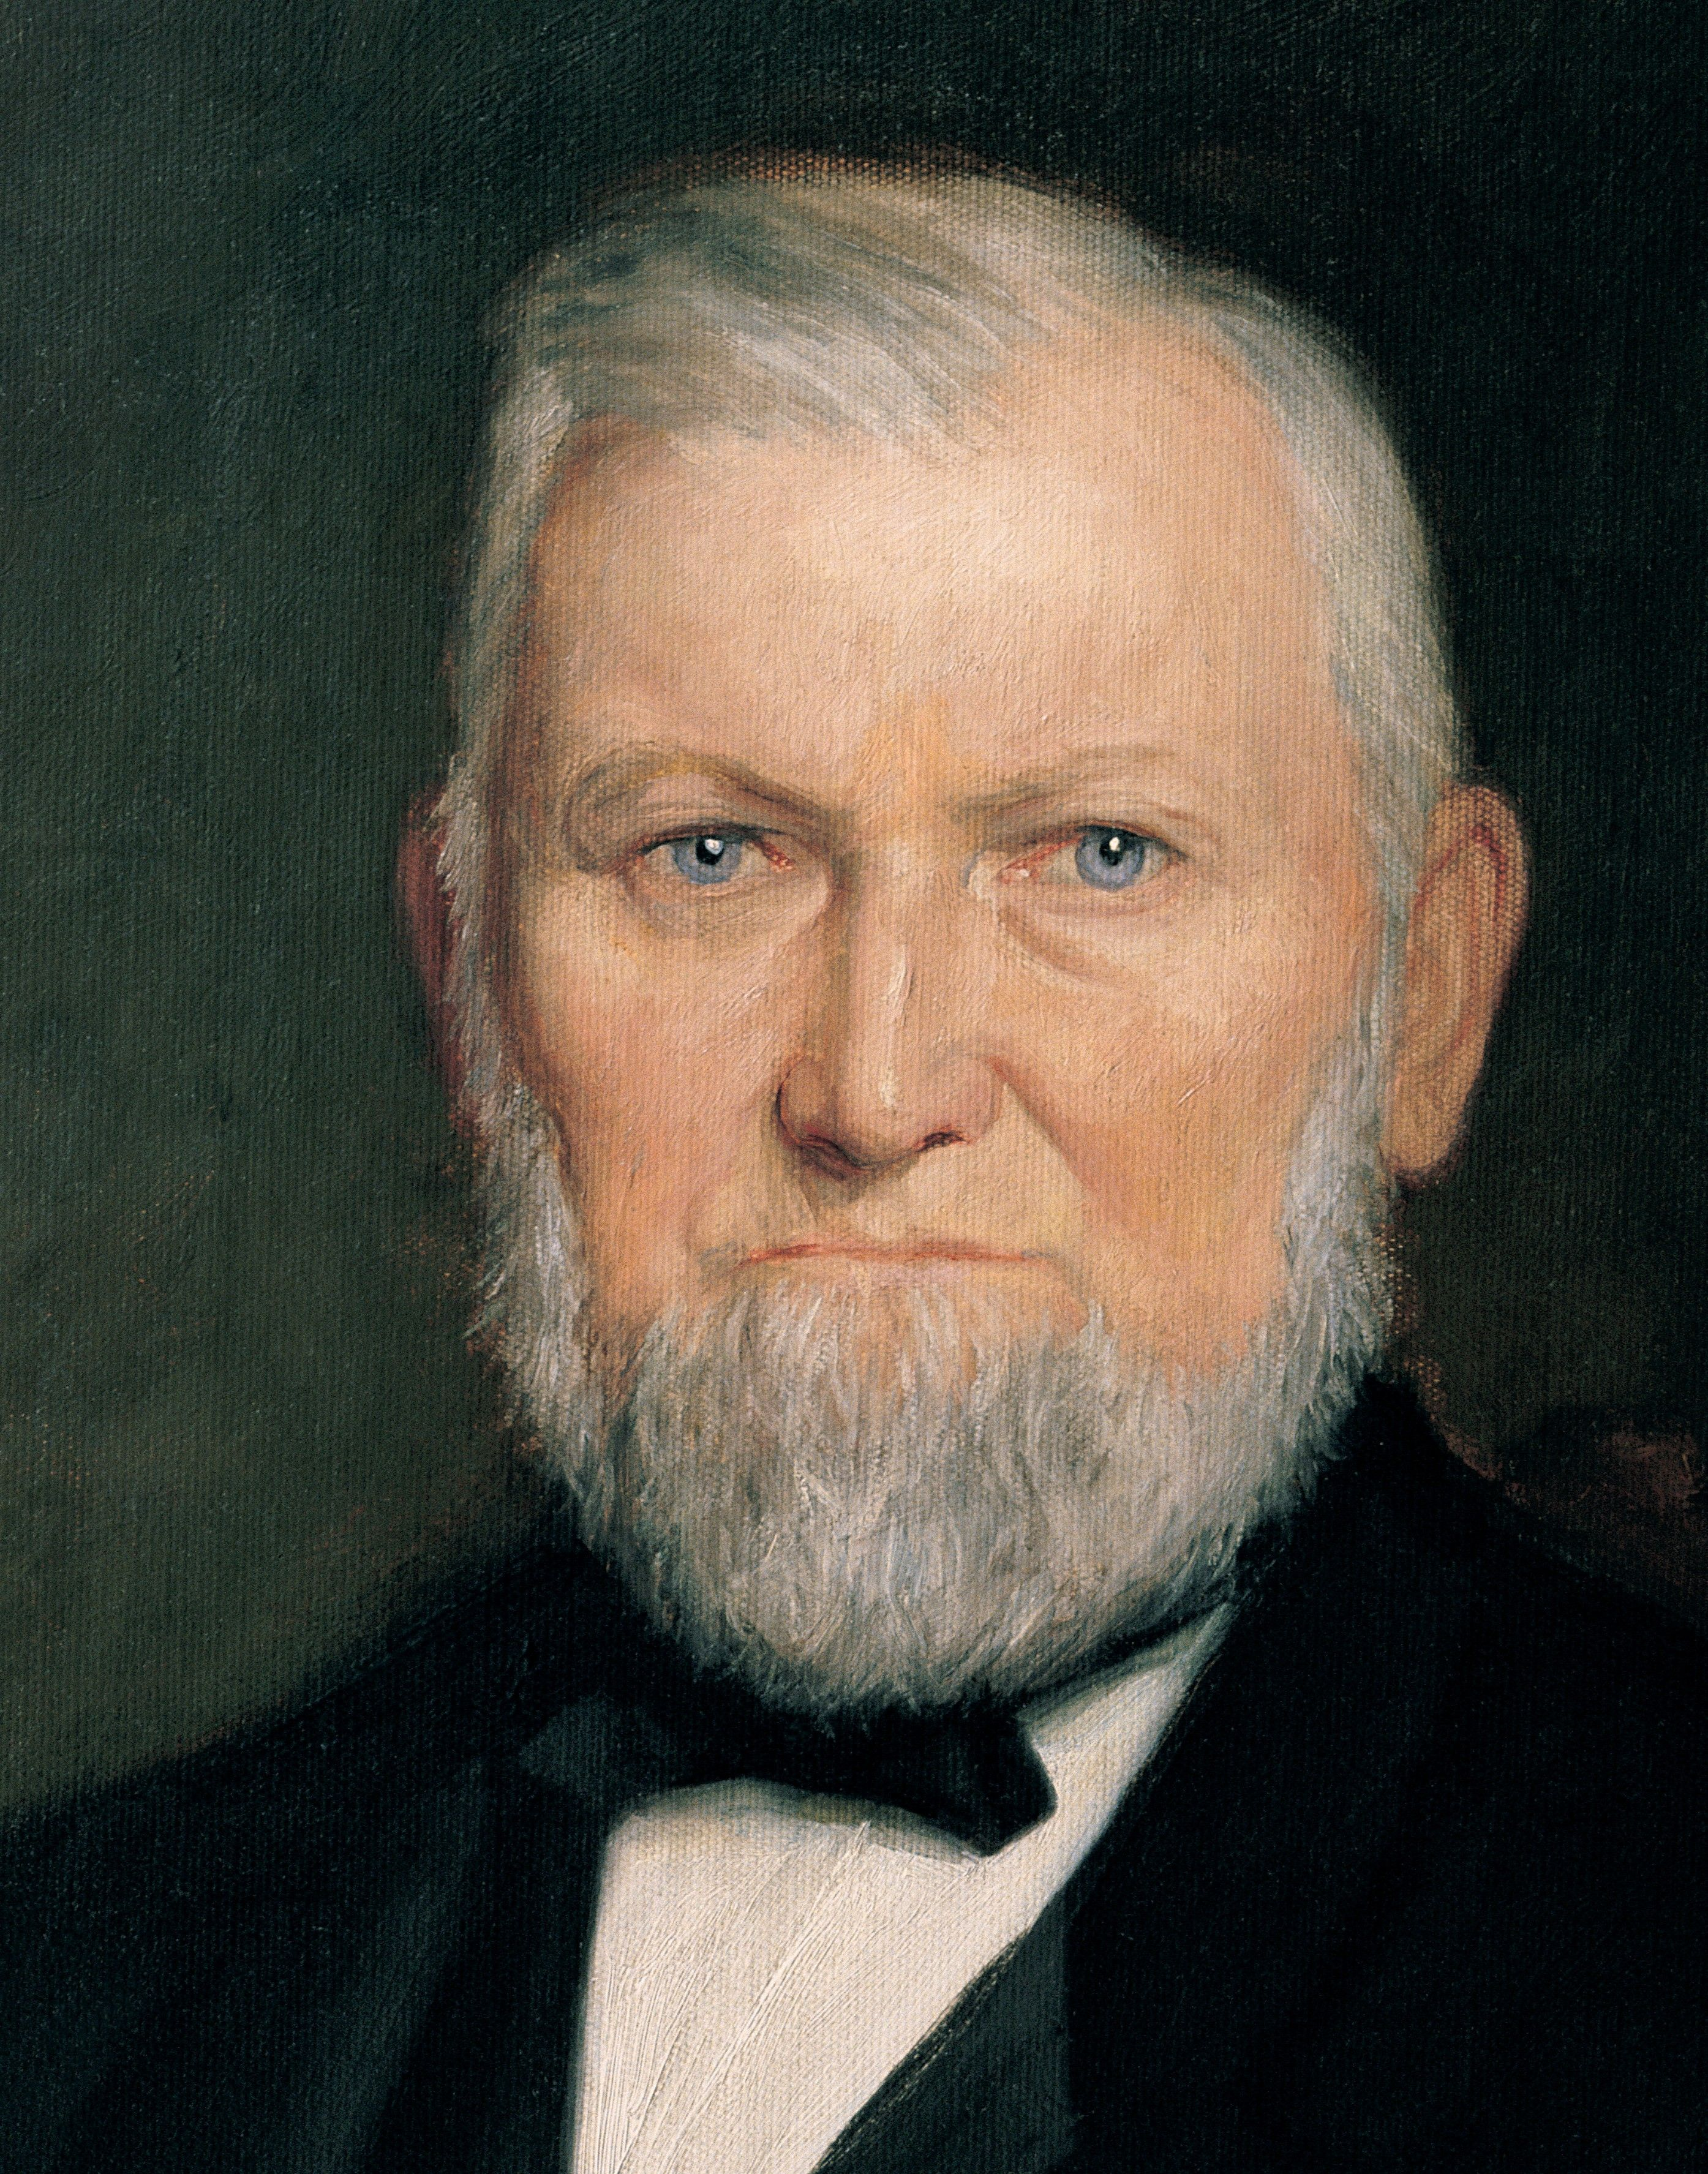 Wilford Woodruff, by H. E. Peterson; GAK 509; Our Heritage, 98–102. President Wilford Woodruff served as the fourth President of the Church from 1889 to 1898.